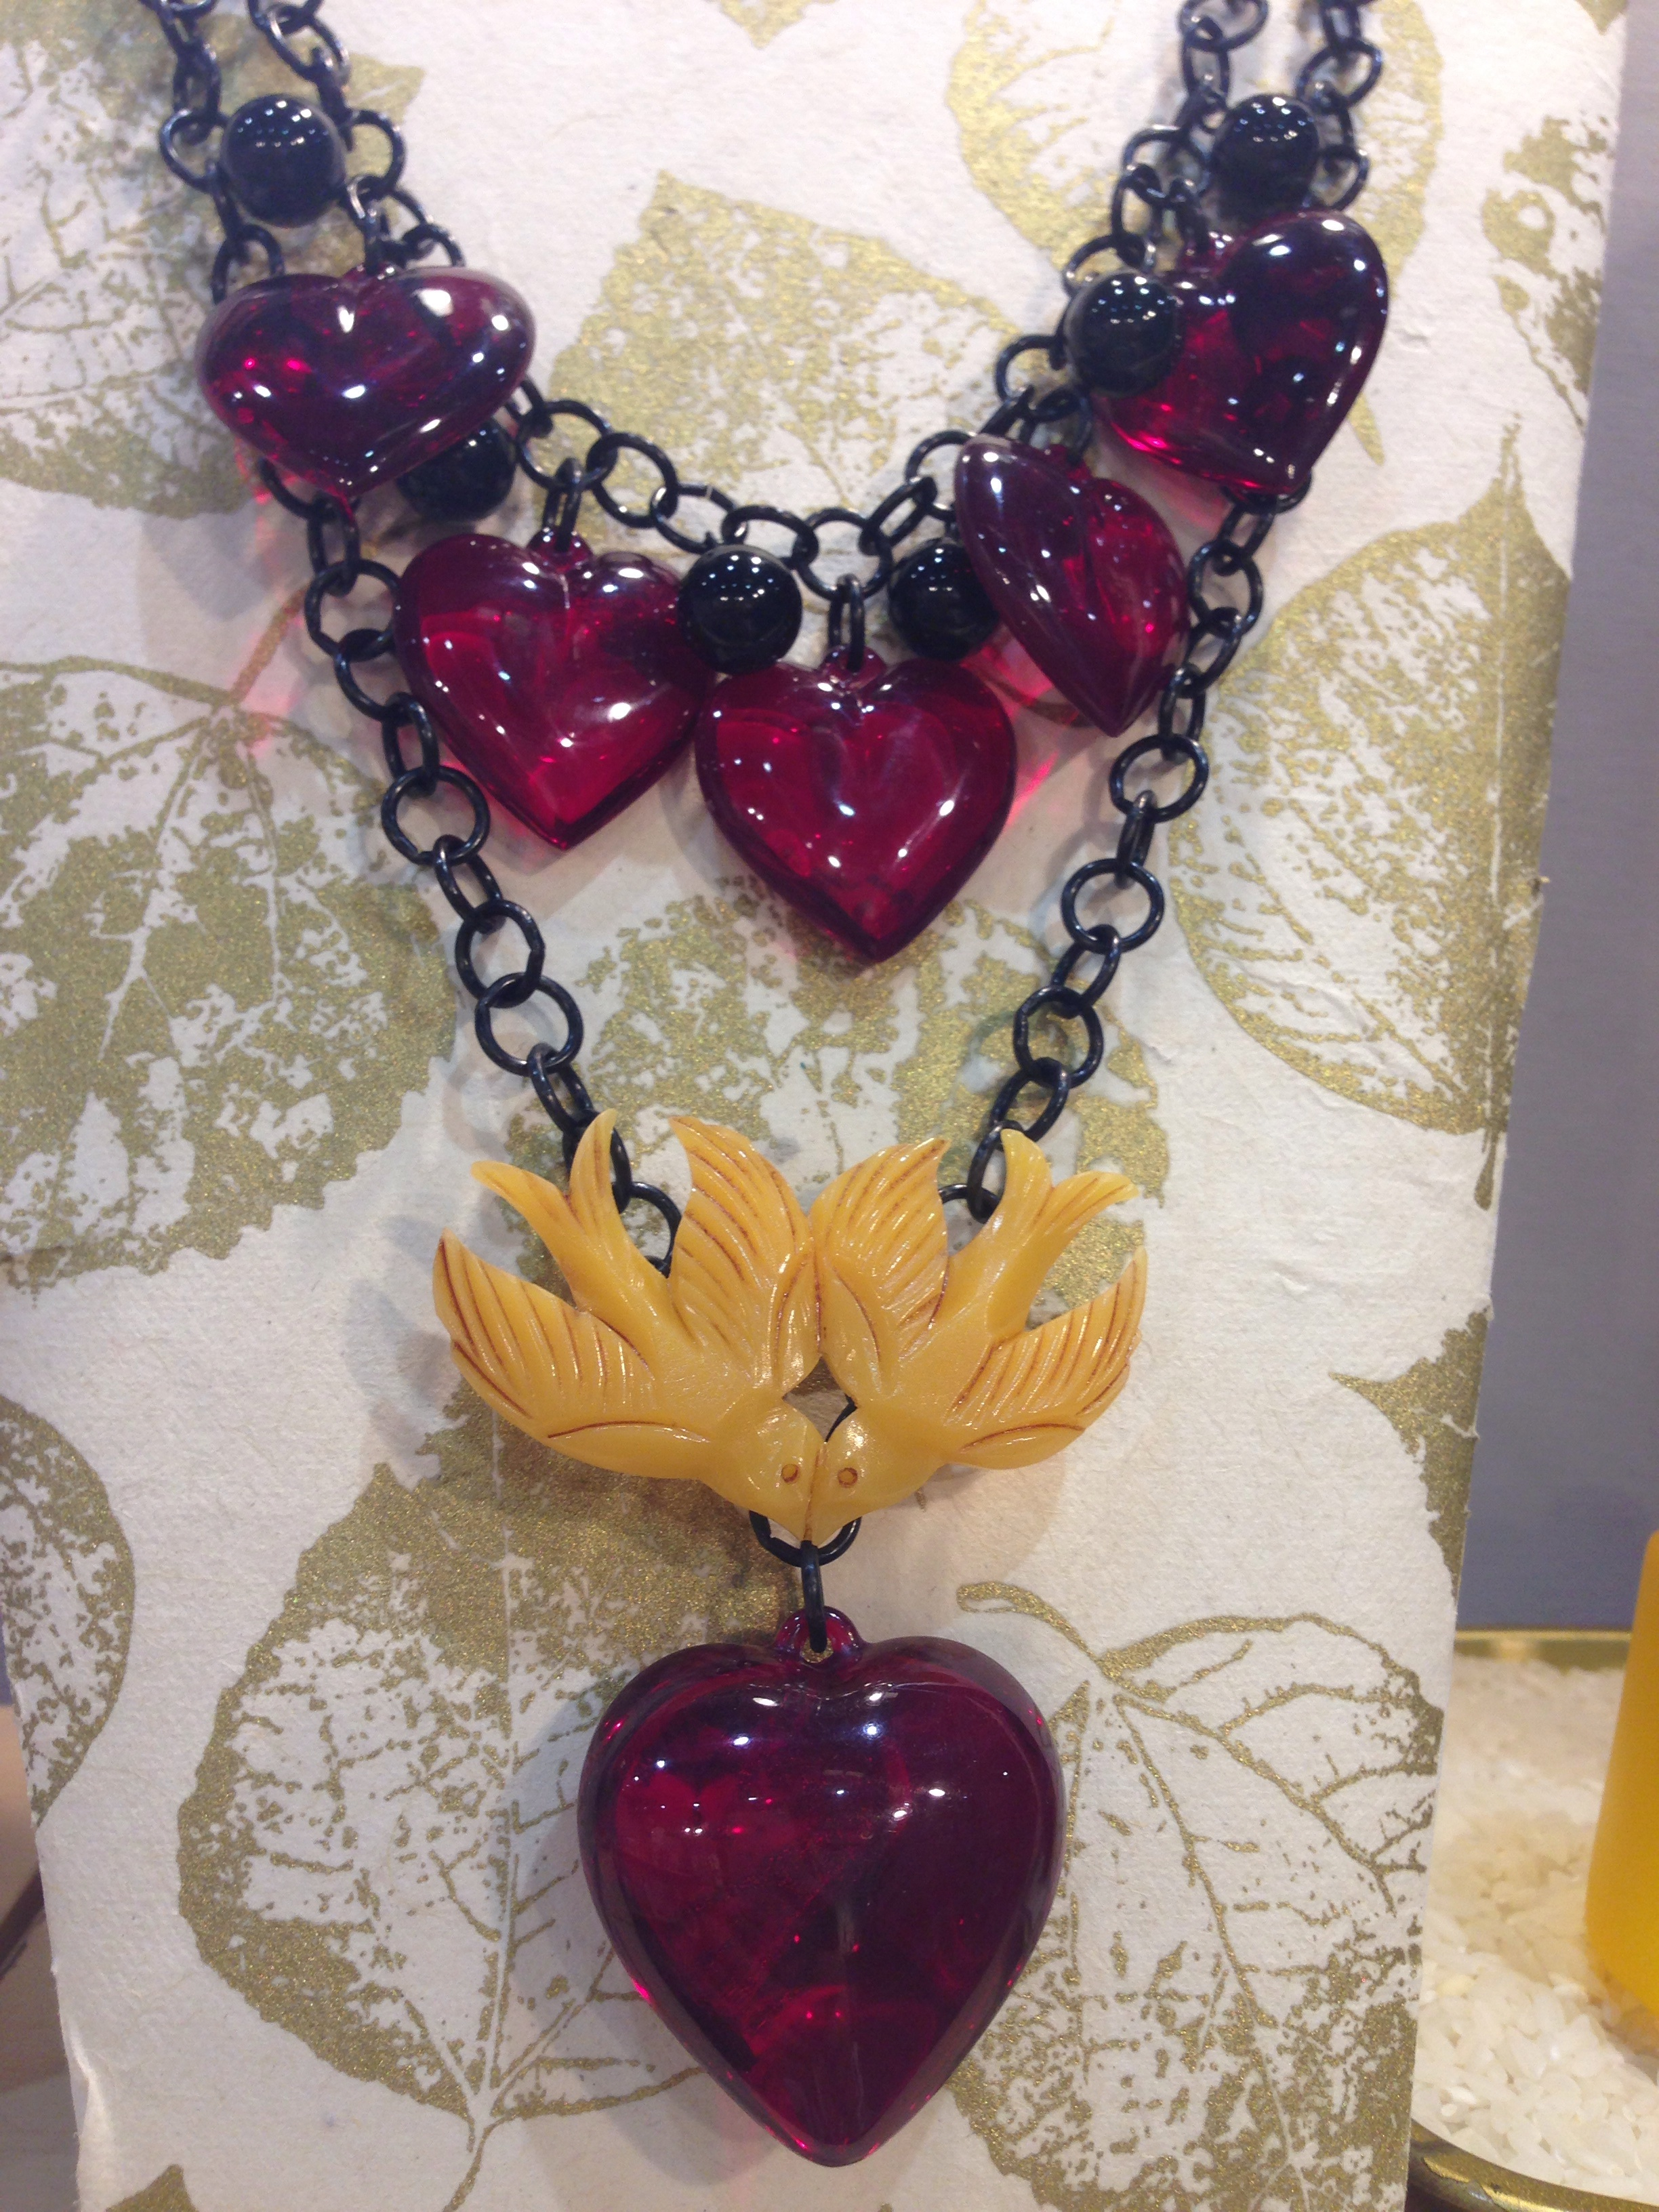 5 scarlet red hearts and onyx baubles. Single scarlet heart with a love bird pin! Kind of flaming heart?!